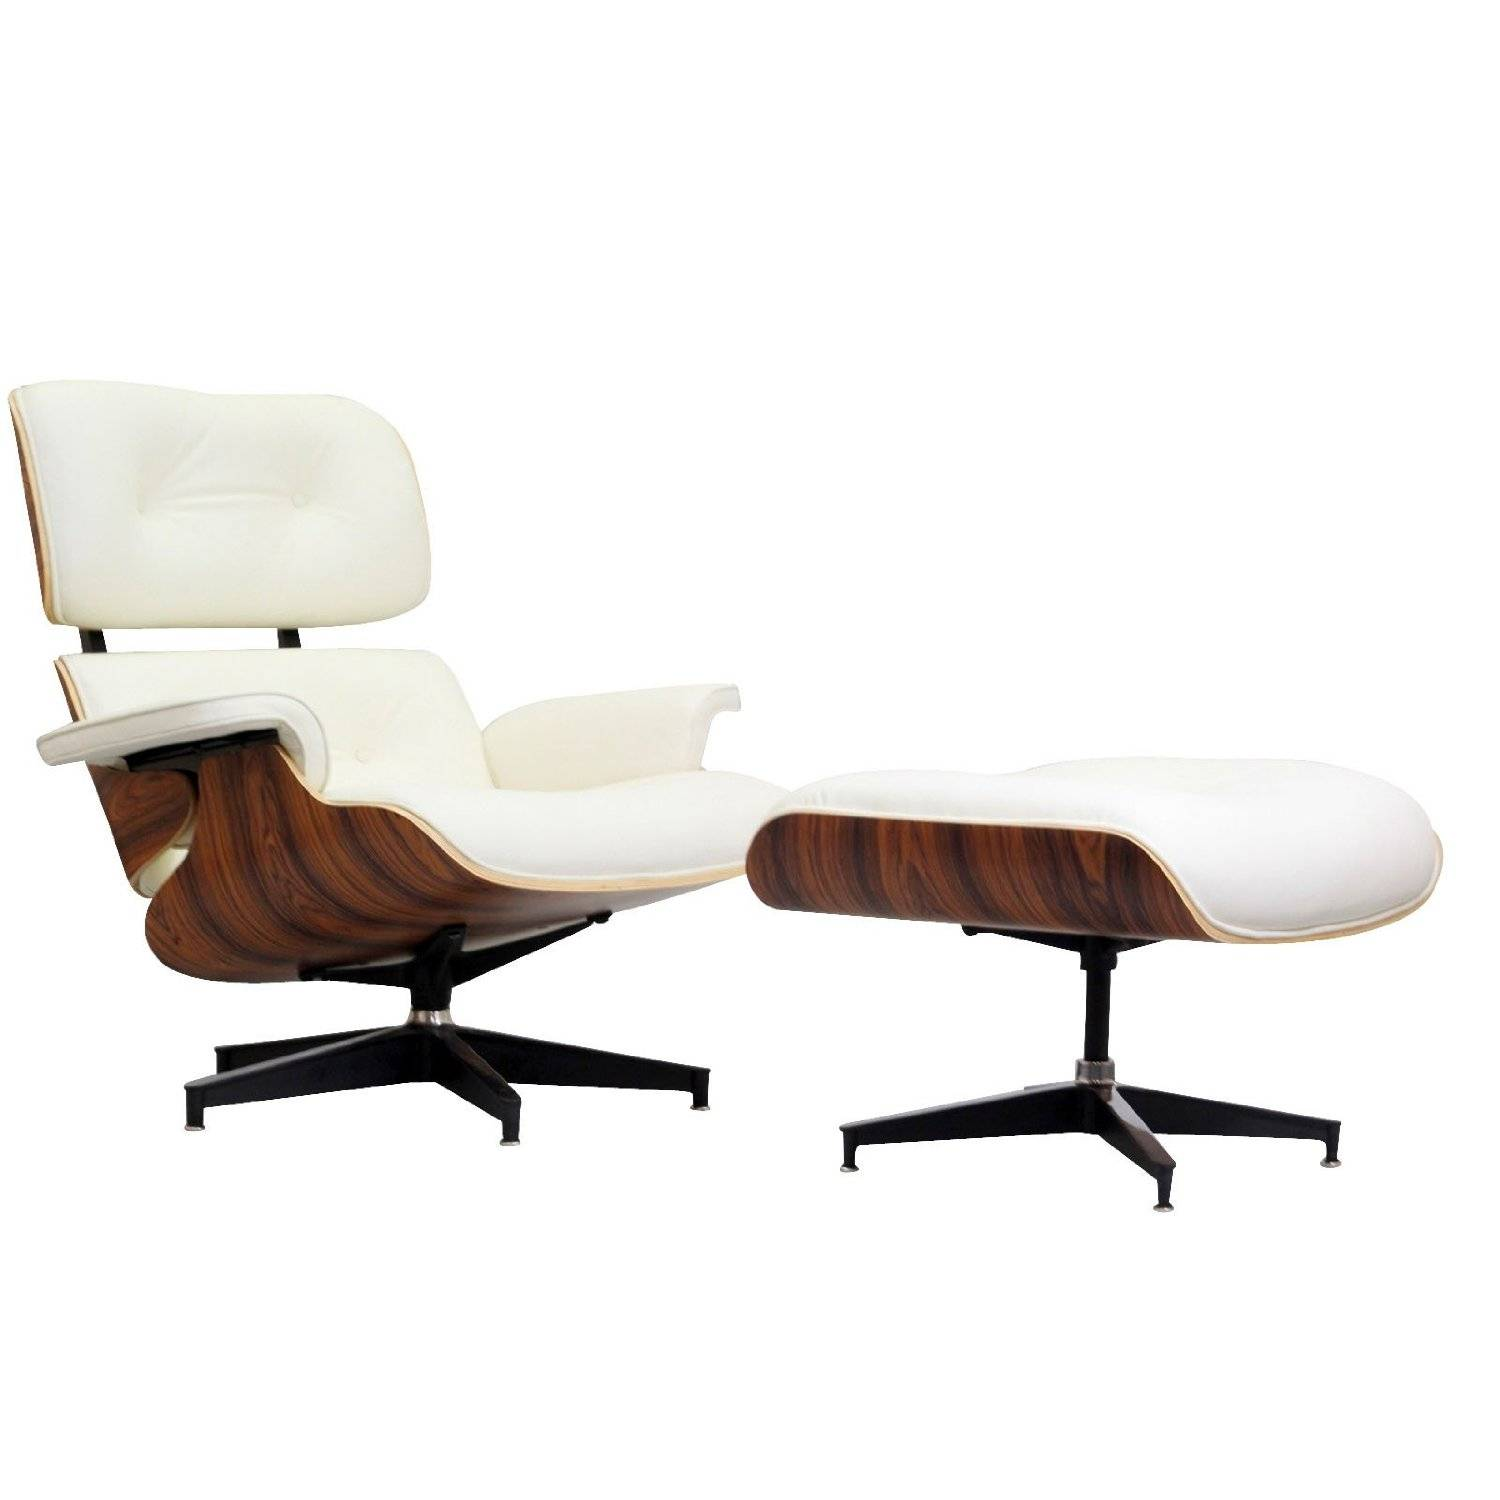 MLF leisurec eames Lounge Chair in White Leather and Palisander Wood